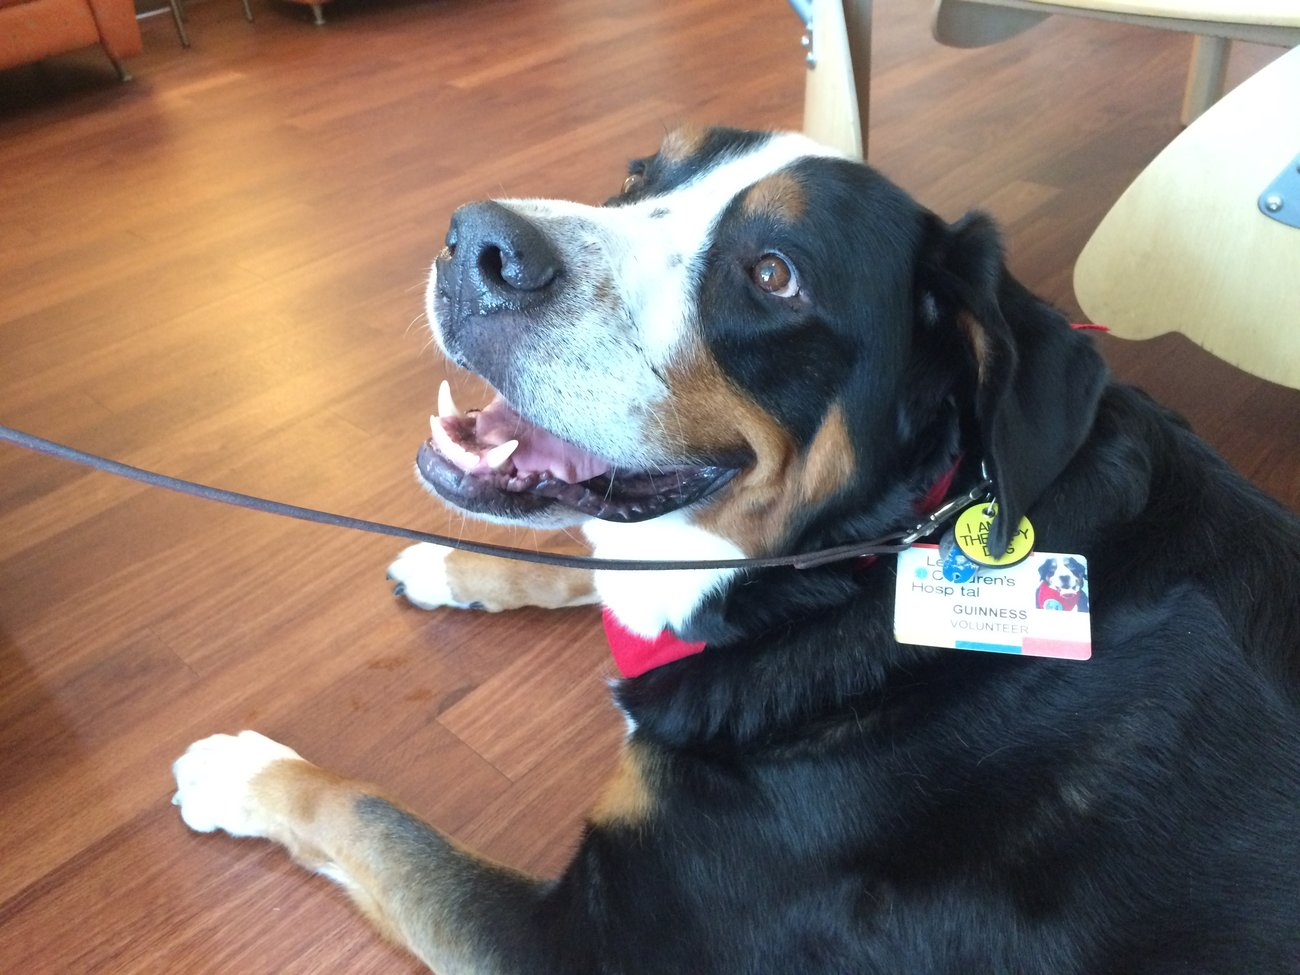 Follow guinness a certified therapy dog on a visit to levine follow guinness a certified therapy dog on a visit to levine childrens hospital 1betcityfo Image collections